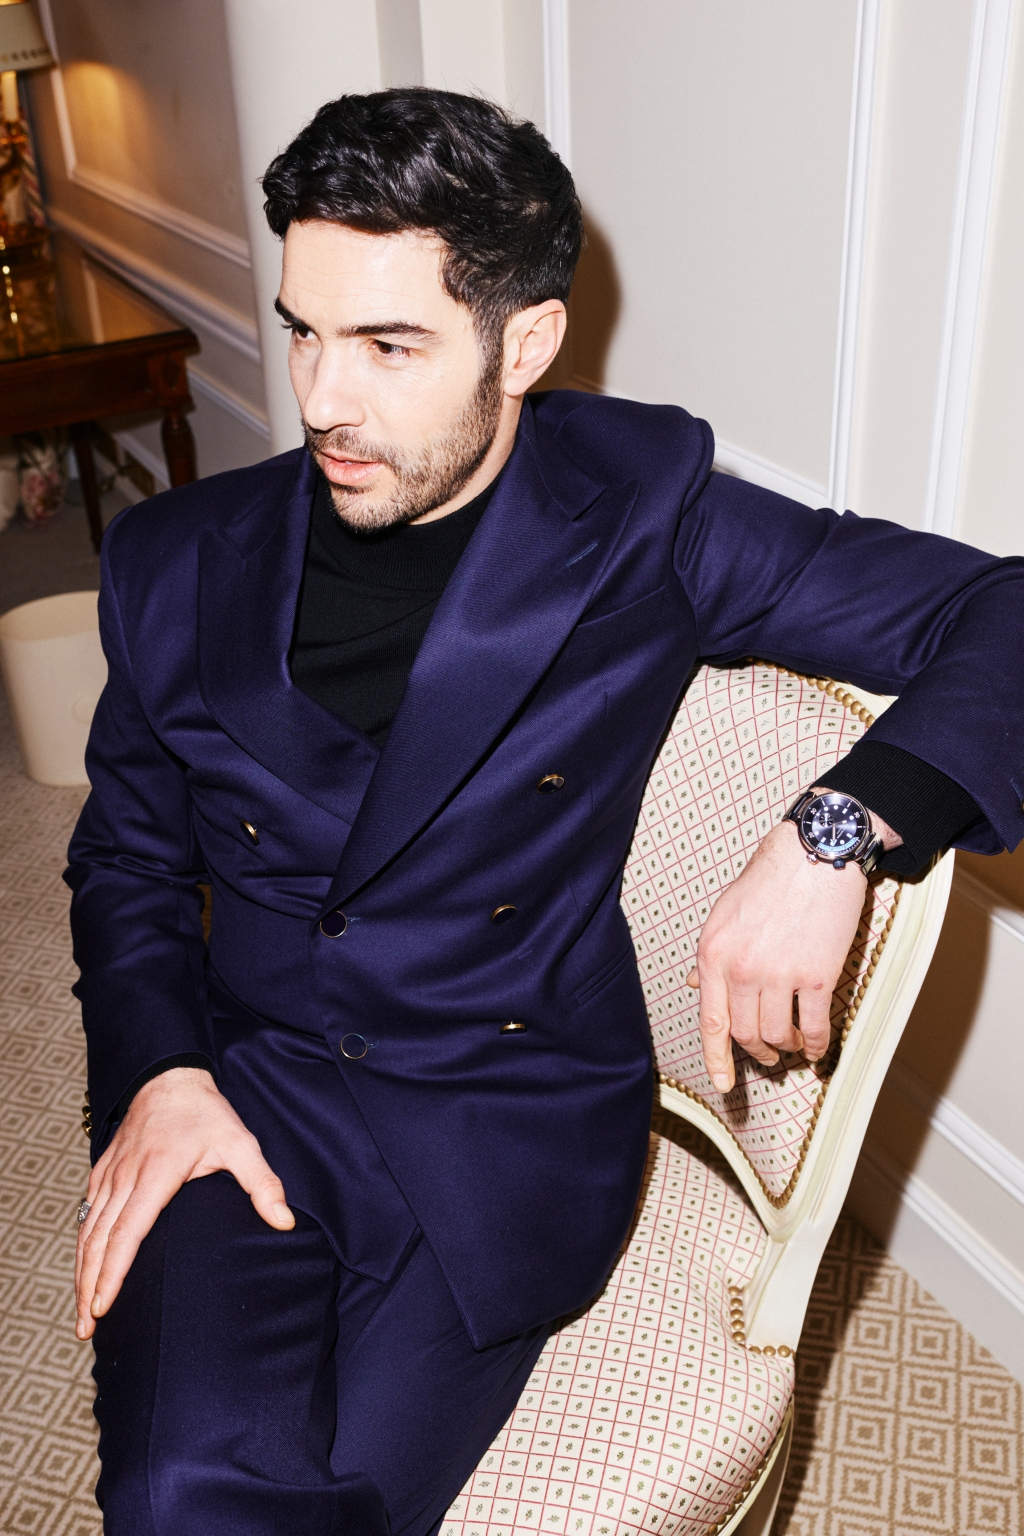 Tahar Rahim wearing the Louis Vuitton Tambour Street Driver watch for the Golden Globes.